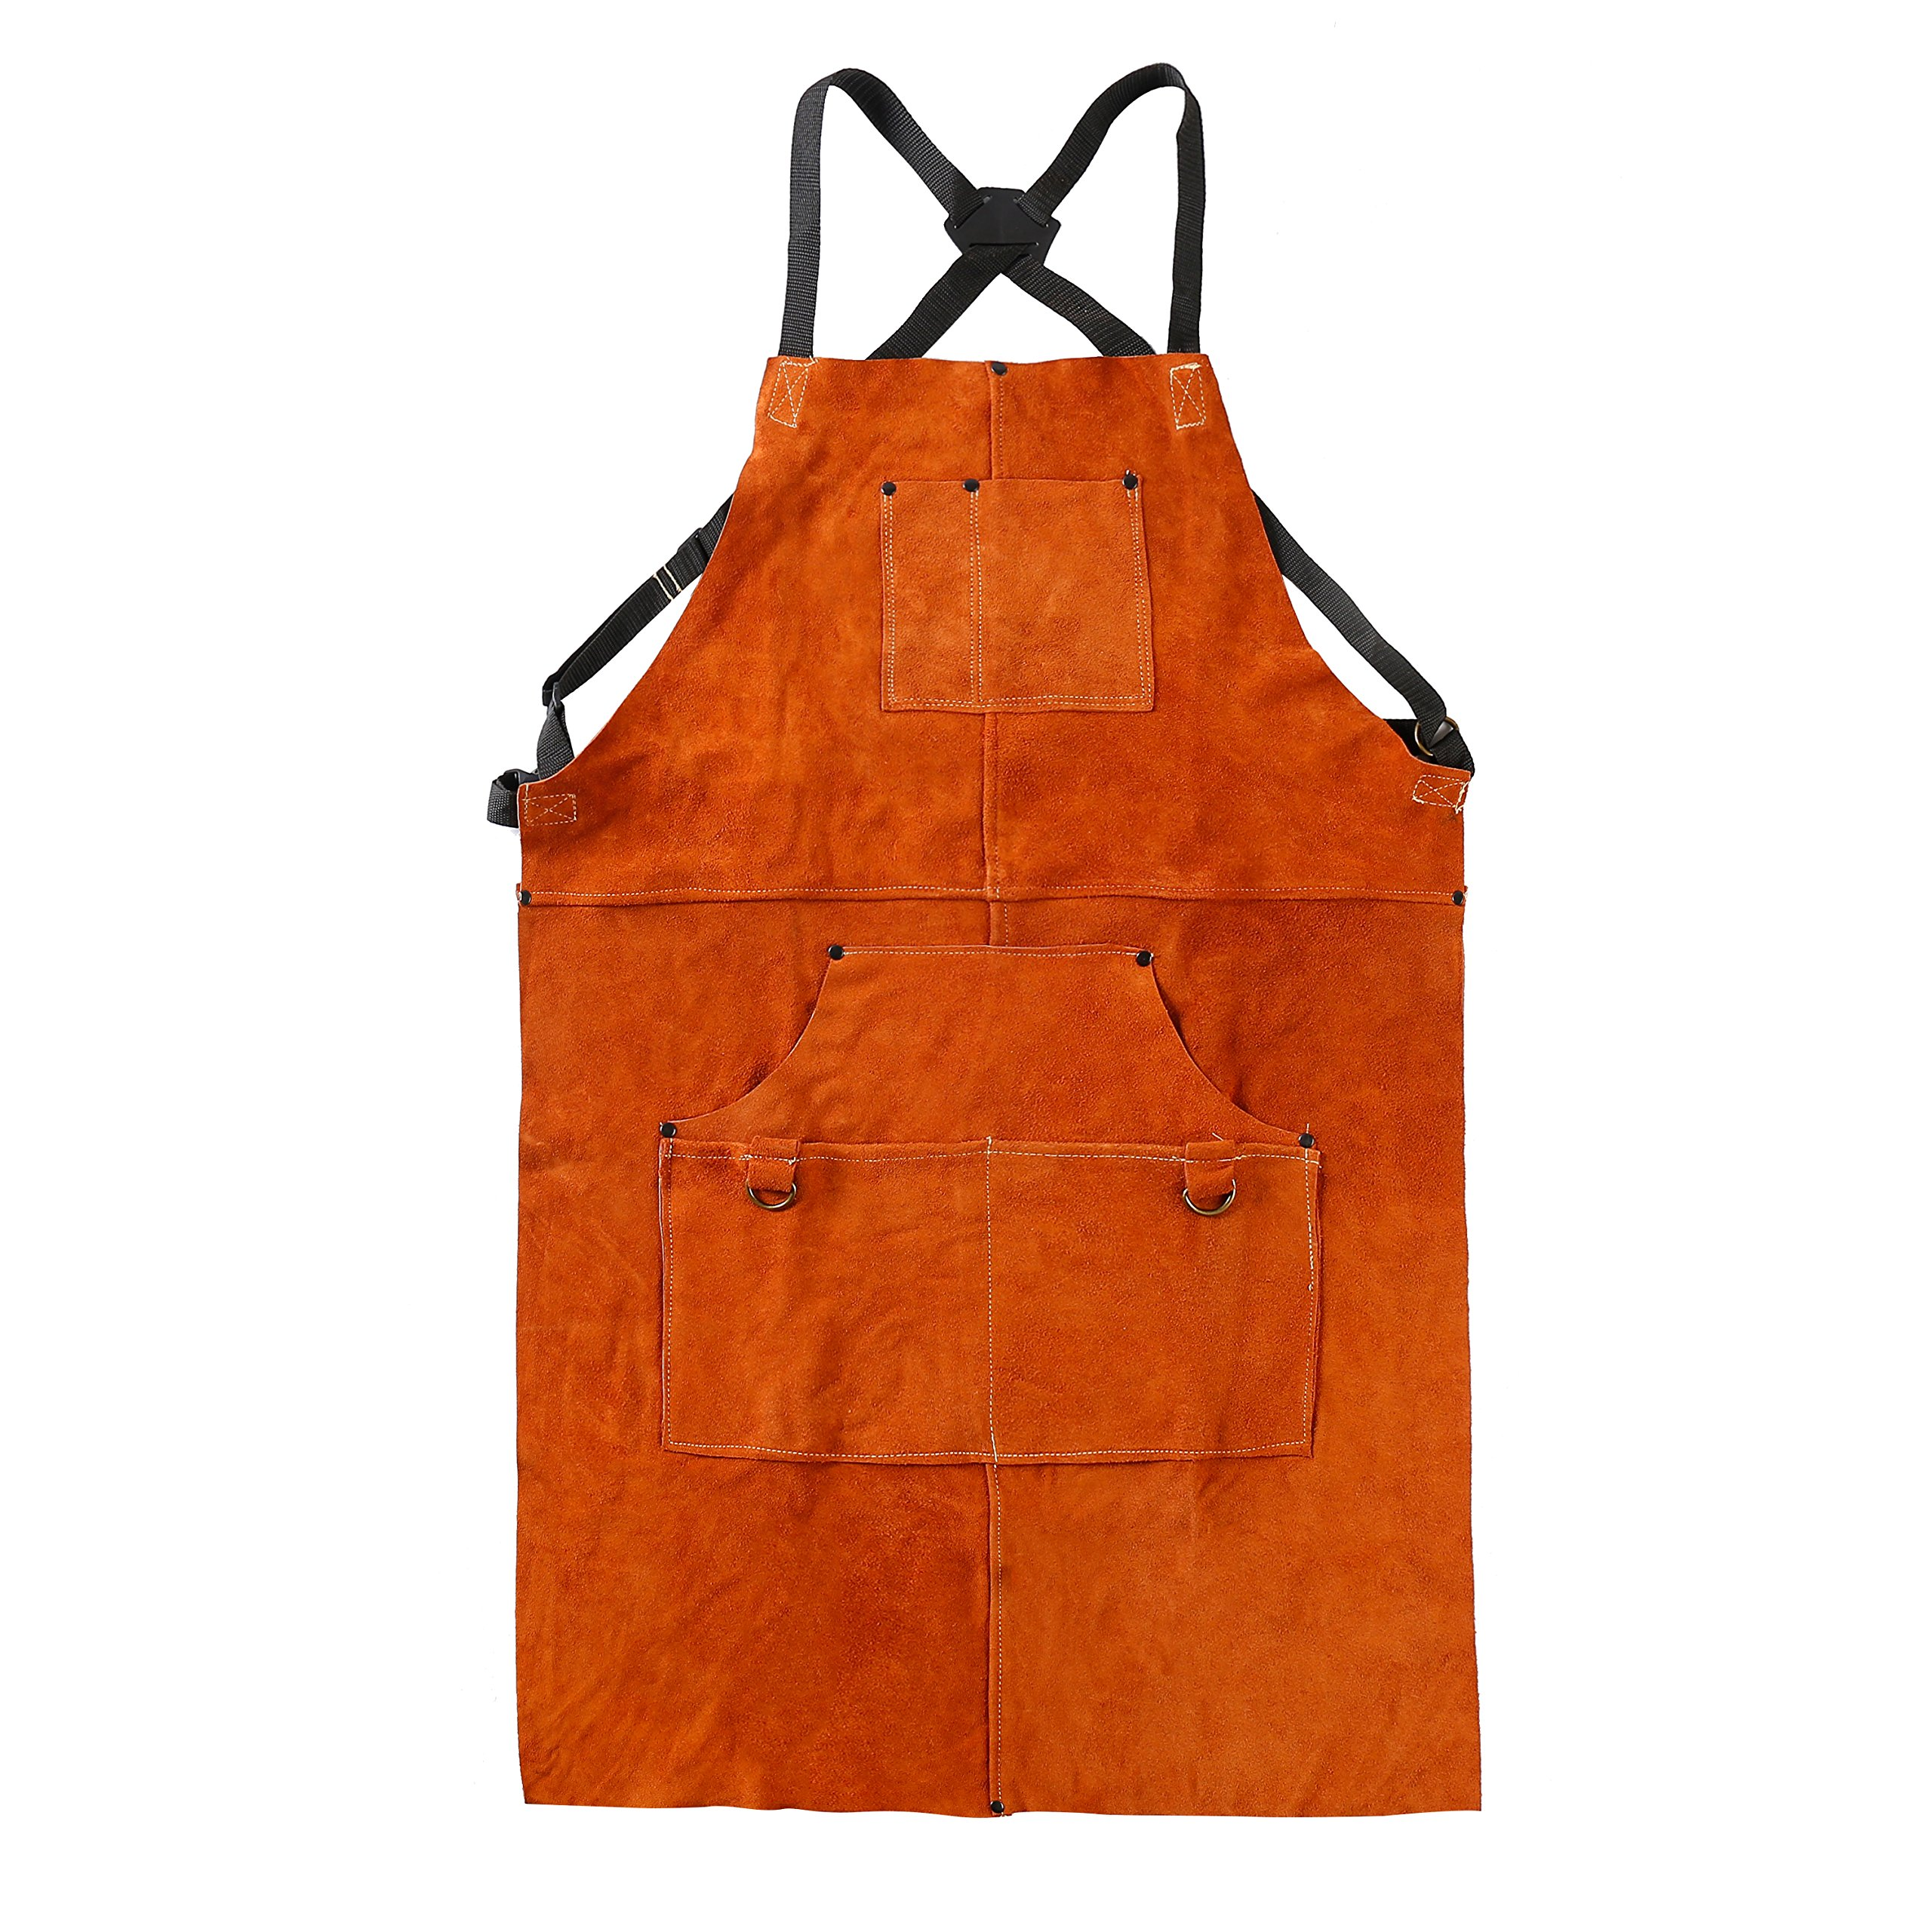 QeeLink Leather Work Apron - Heat & Flame-Resistant Heavy Duty Shop Apron with 6 Tool Pockets, 24'' x 36'', Adjustable up to XXL for Men & Women (Brown)